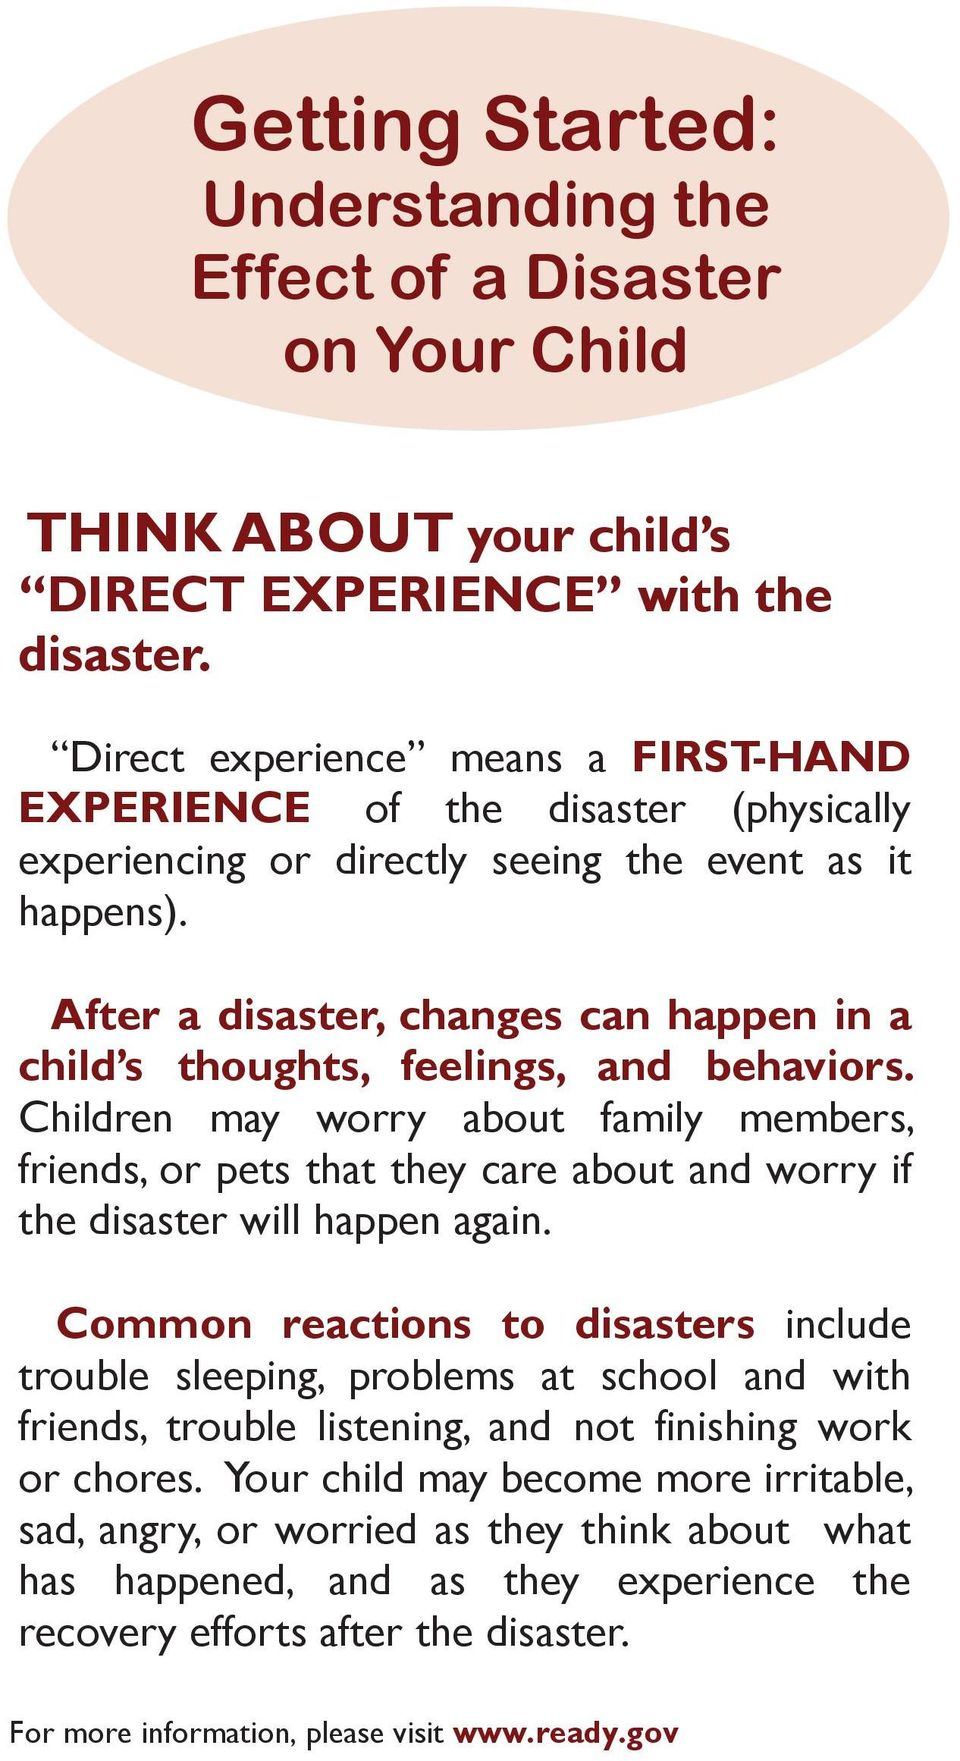 After a disaster, changes can happen in a child s thoughts, feelings, and behaviors.